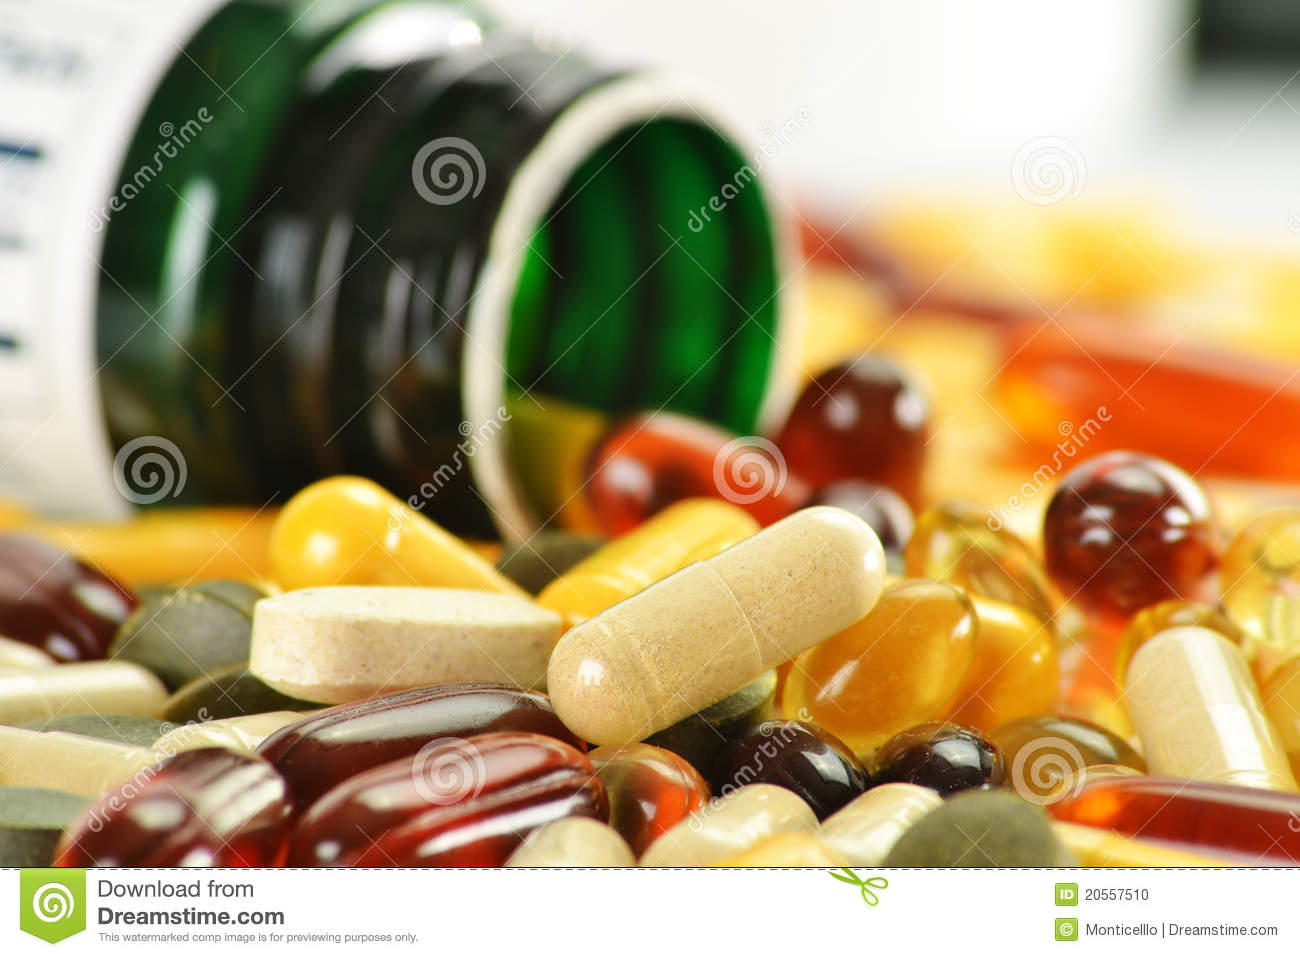 Dietary supplement capsules and containers